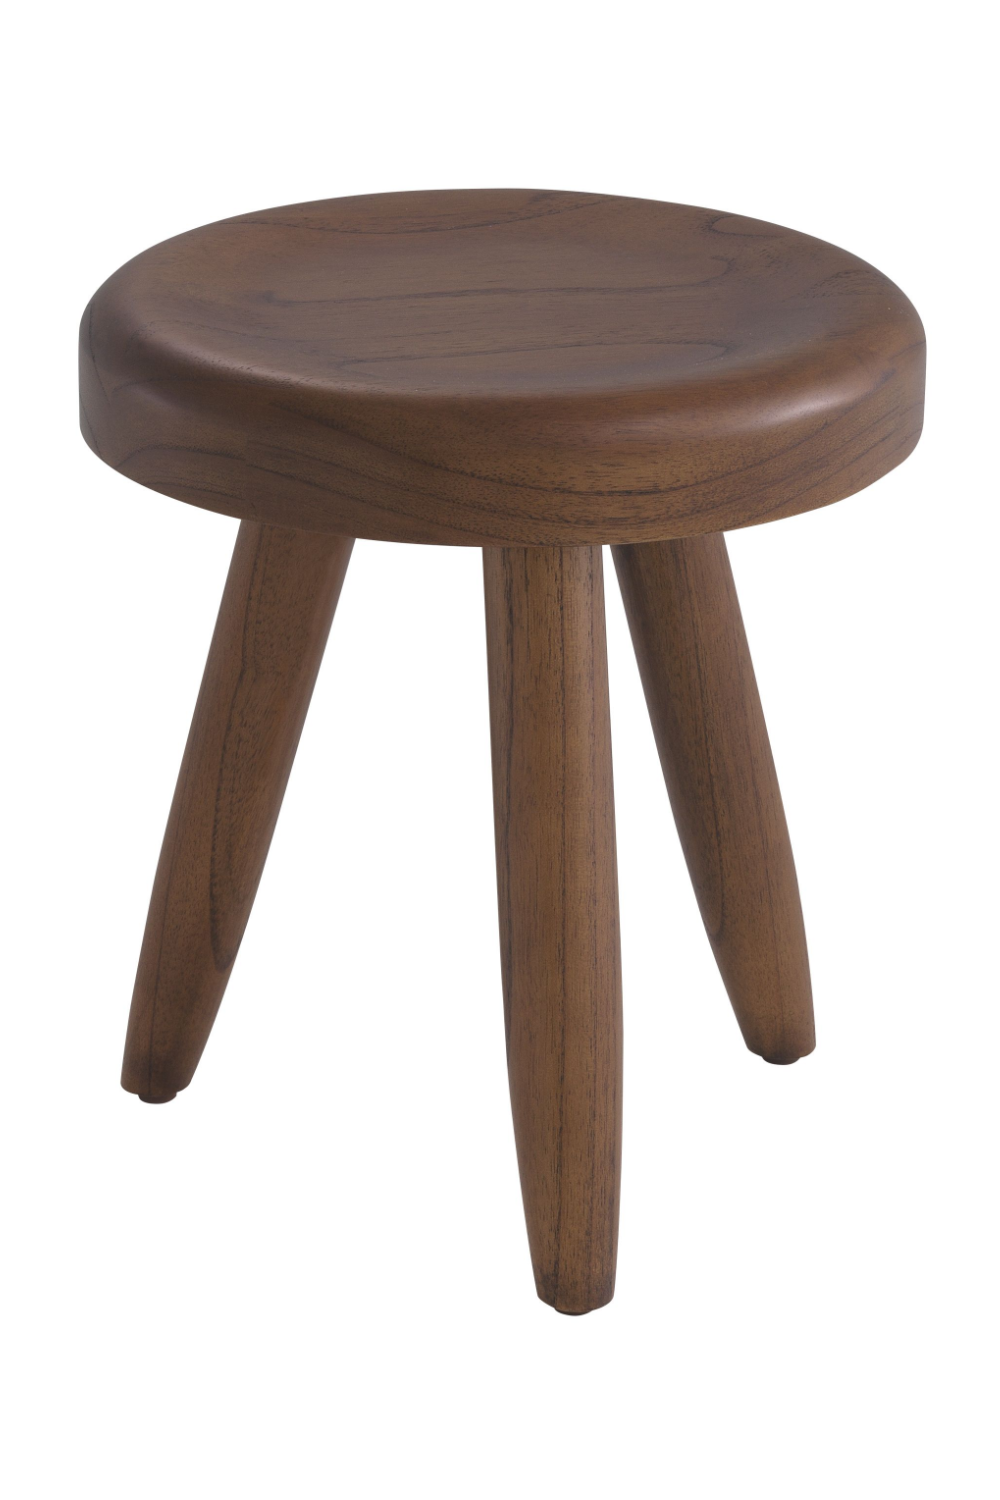 Minimal Wood Stool | Eichholtz Stella S | Woodfurniture.com